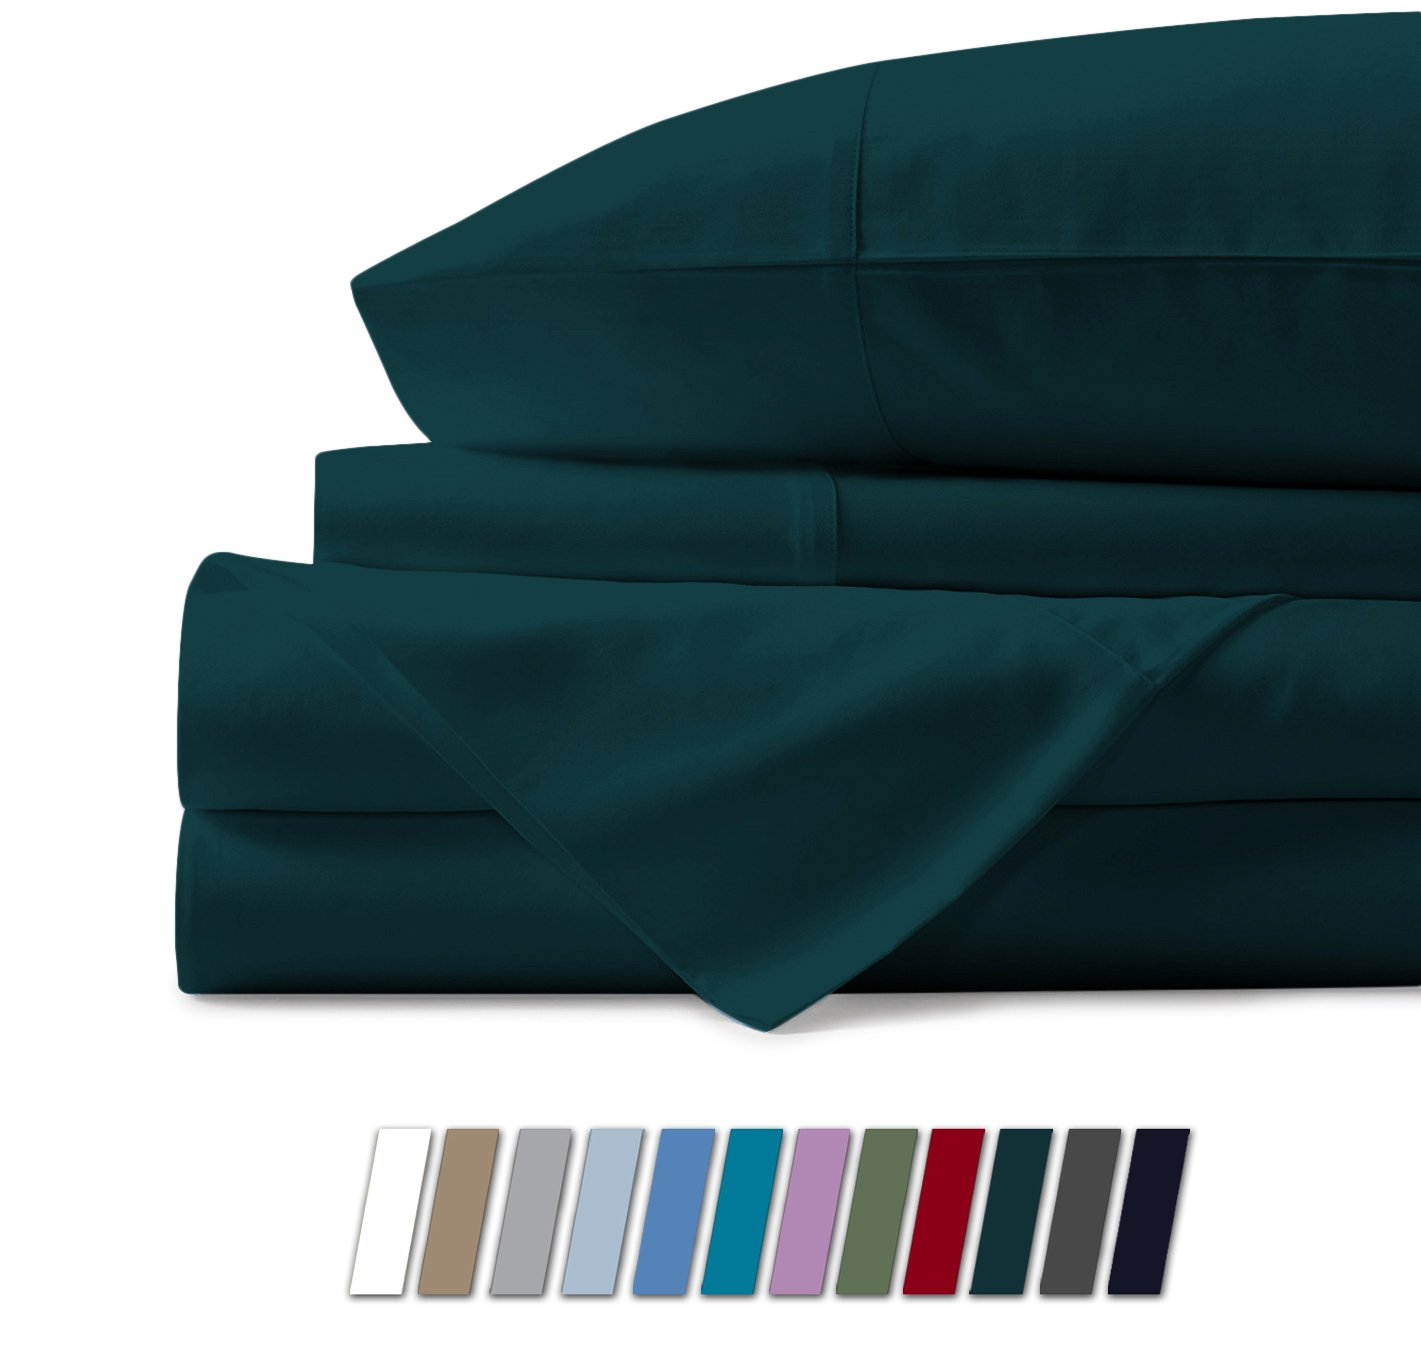 Mayfair Linen 100% Egyptian Cotton Sheets, Teal King Sheets Set, 600 Thread Count Long Staple Cotton, Sateen Weave for Soft and Silky Feel, Fits Mattress Upto 18'' DEEP Pocket